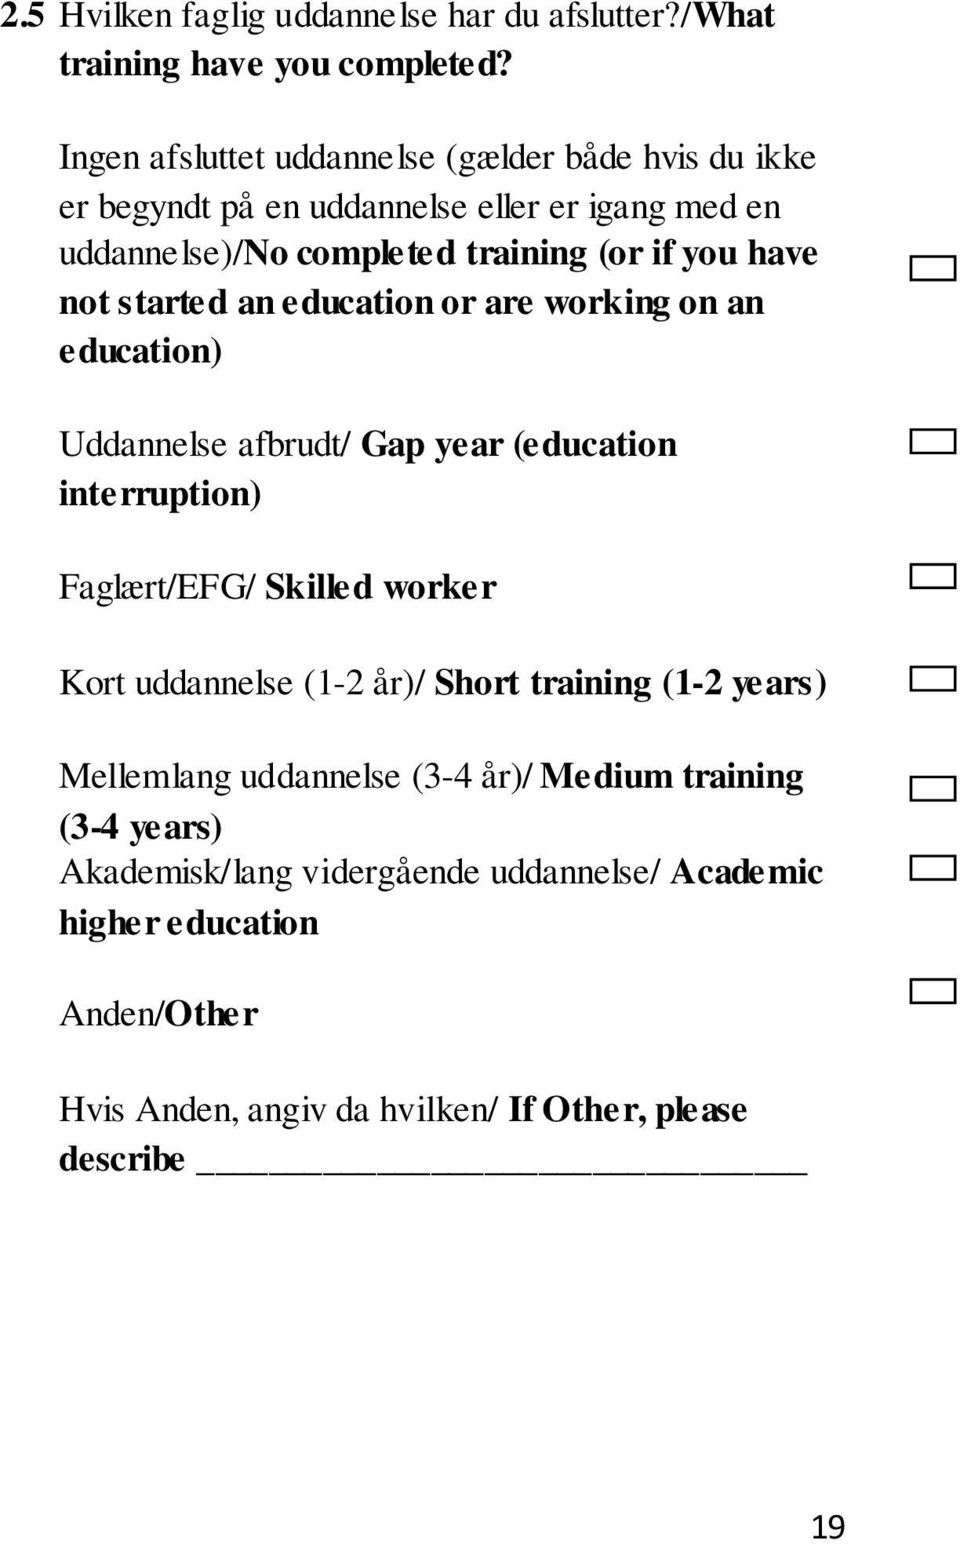 not started an education or are working on an education) Uddannelse afbrudt/ Gap year (education interruption) Faglært/EFG/ Skilled worker Kort uddannelse